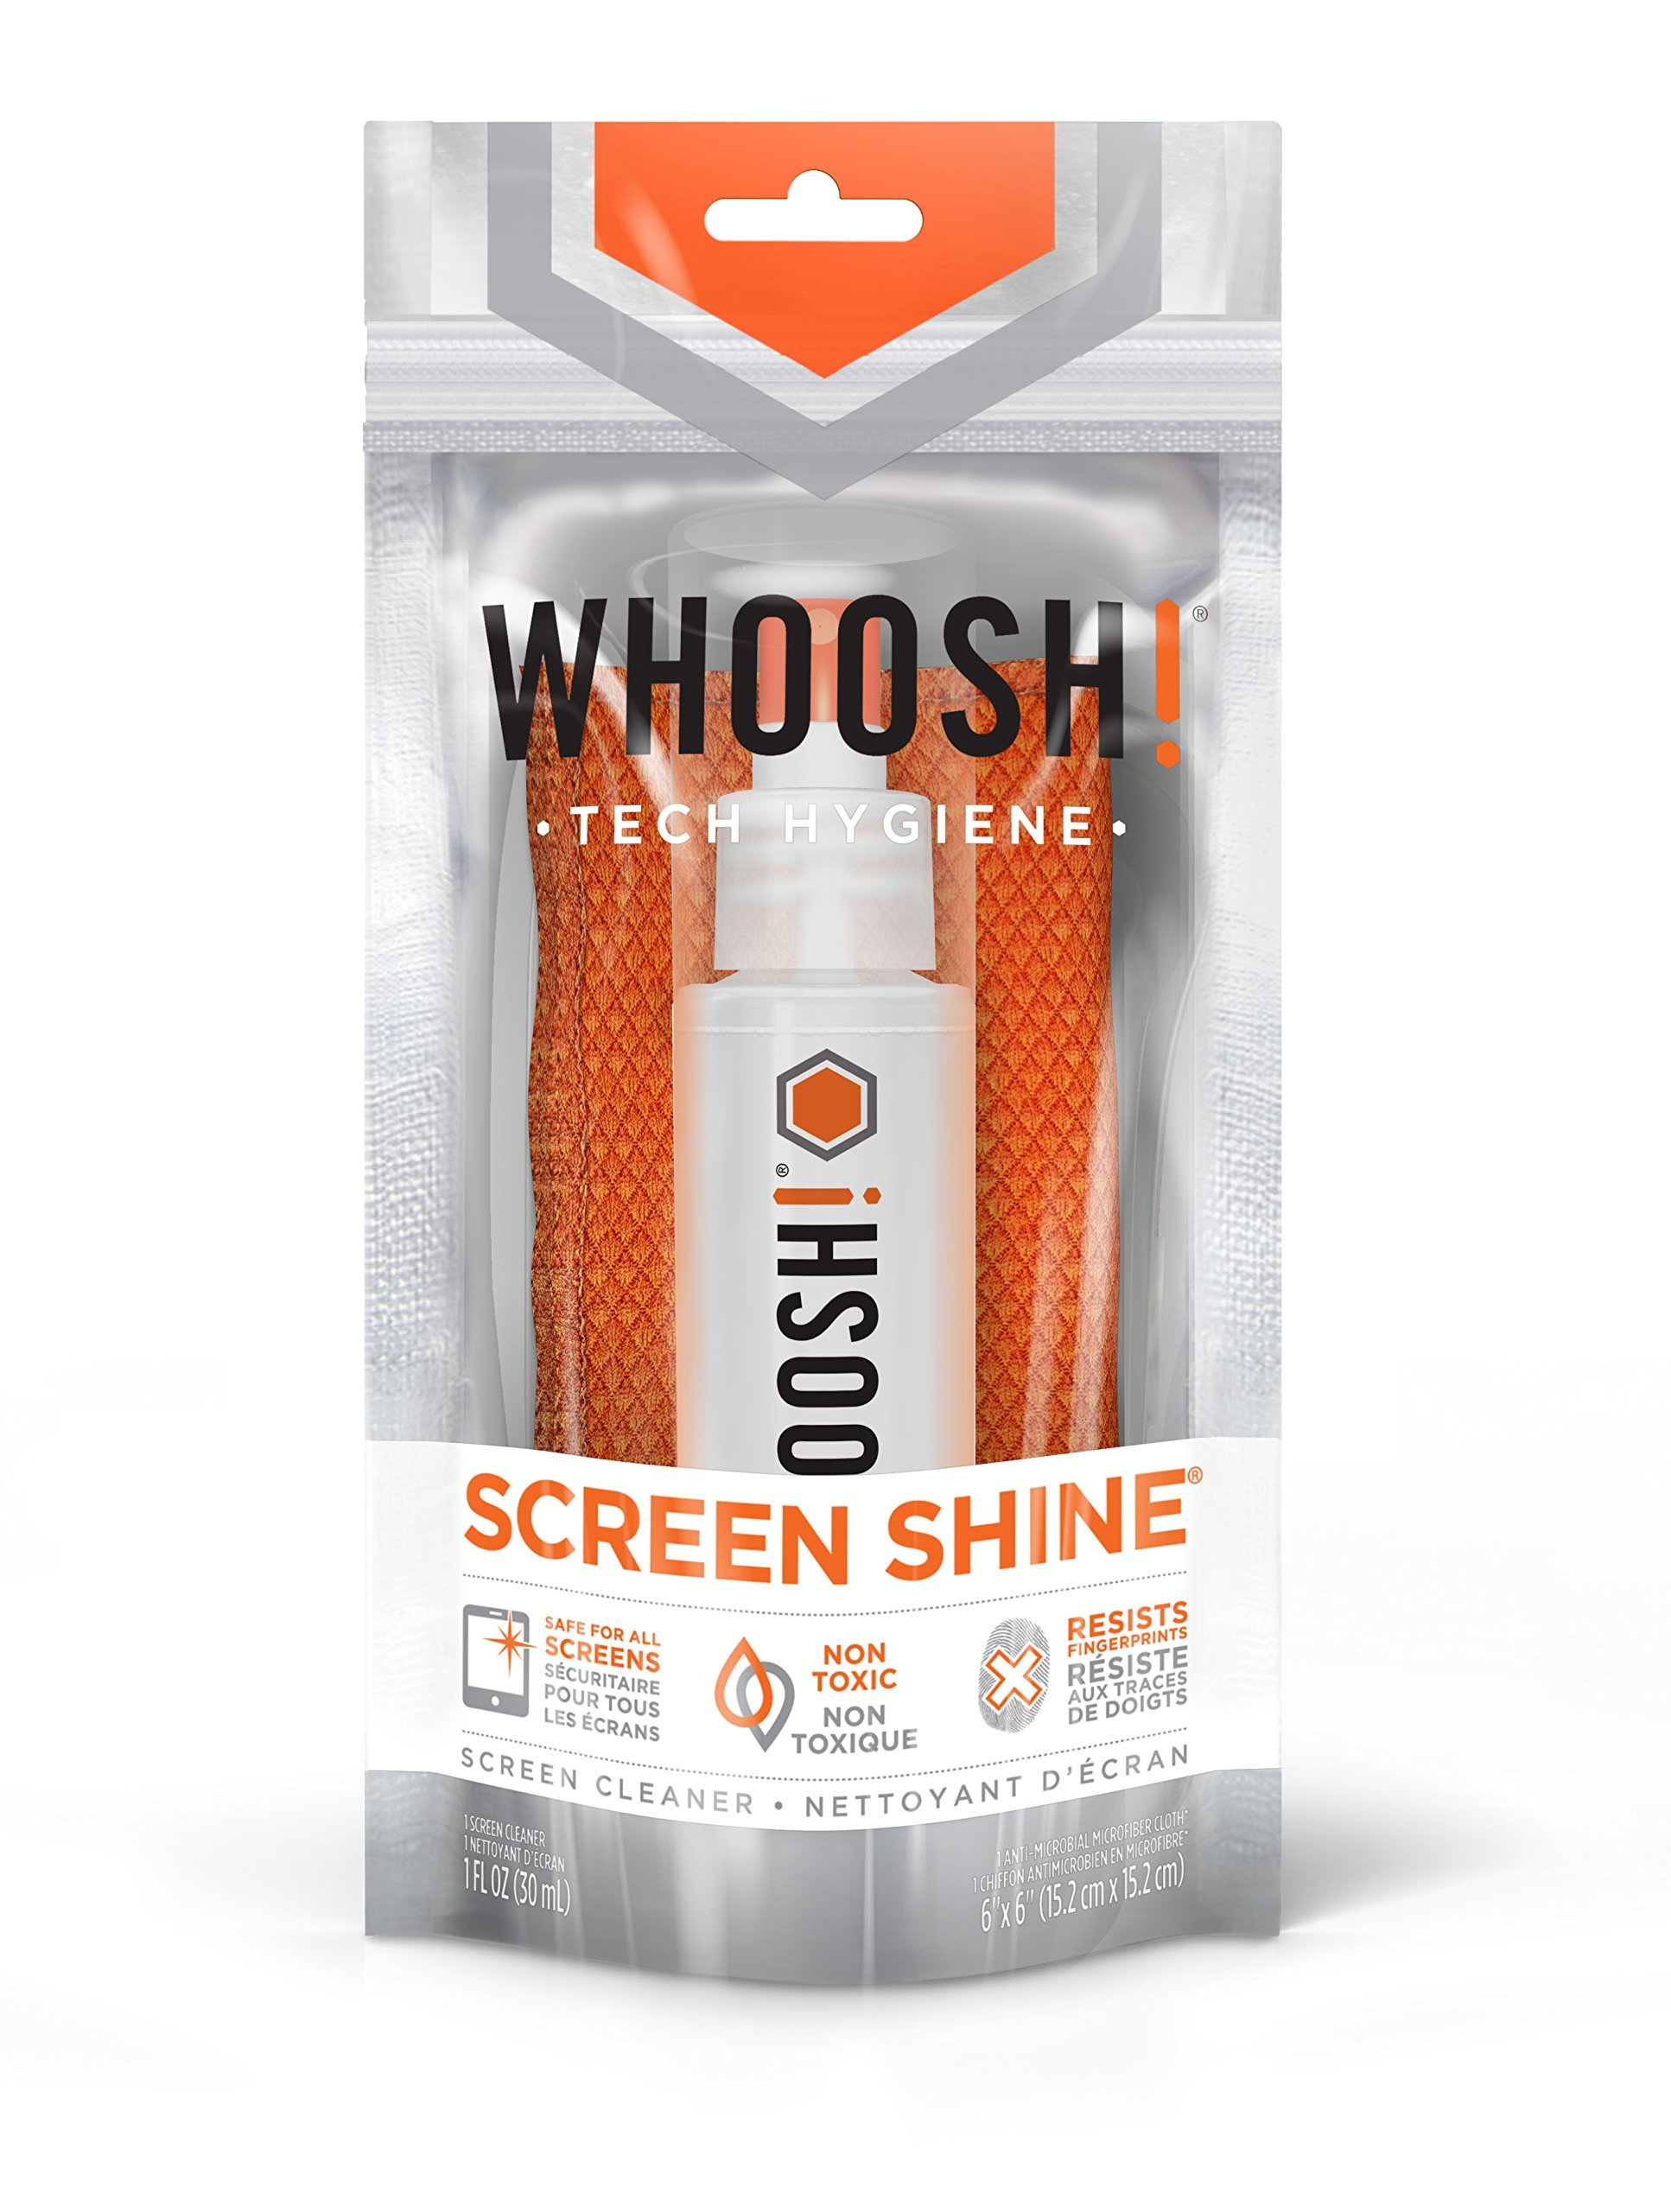 WHOOSH! Award-Winning Screen Cleaner – Safe for All Screens – Smartphones, iPads, Eyeglasses, Kindle, LED, LCD & TVs – Includes 1 Oz Bottle + 1 Premium Antimicrobial Microfiber Cloth